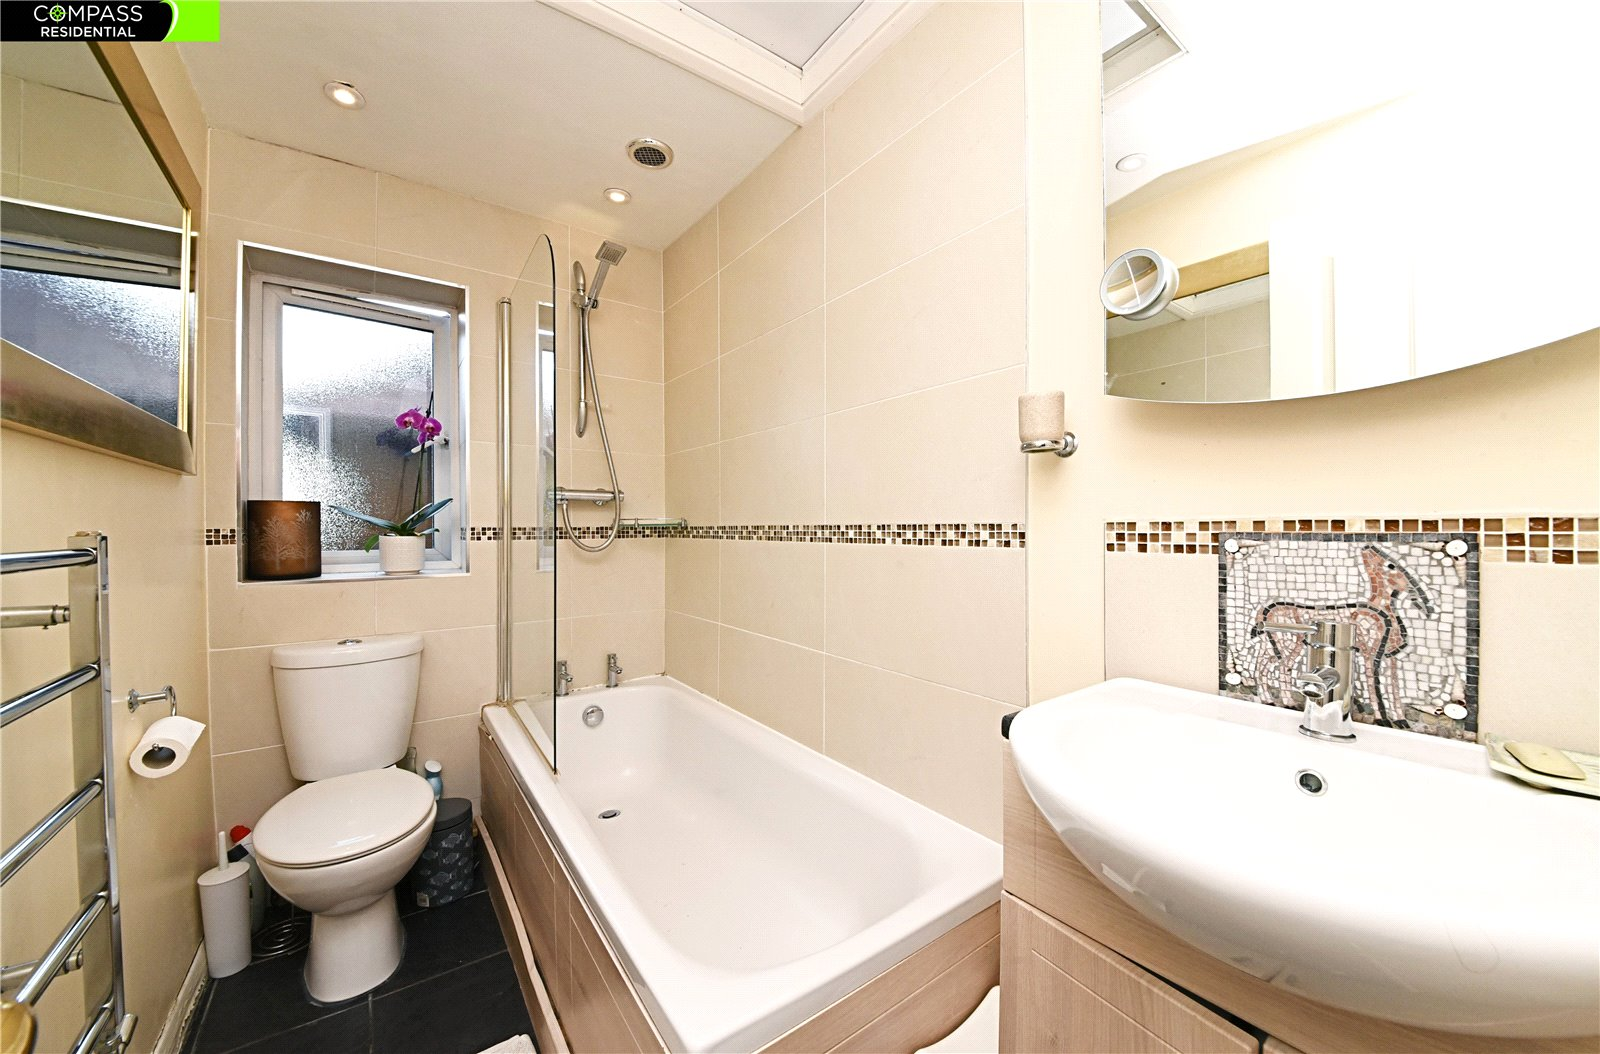 4 bed house for sale in Whetstone, N20 0HJ  - Property Image 8